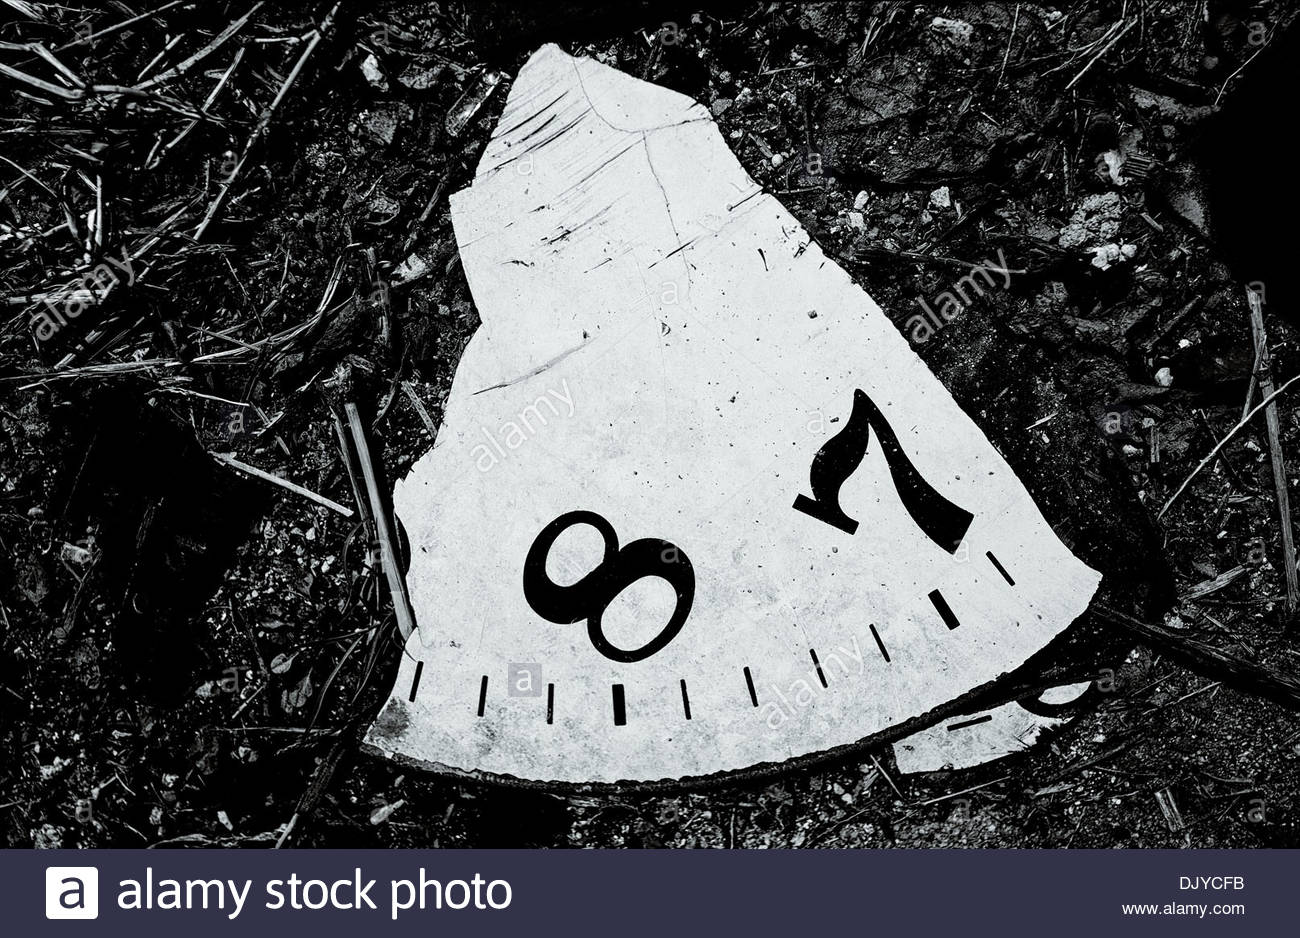 A fragment of a clock face numbers '8' and '7' lies abandoned in the edgelands surrounding the South Korean city of Chungju. - Stock Image